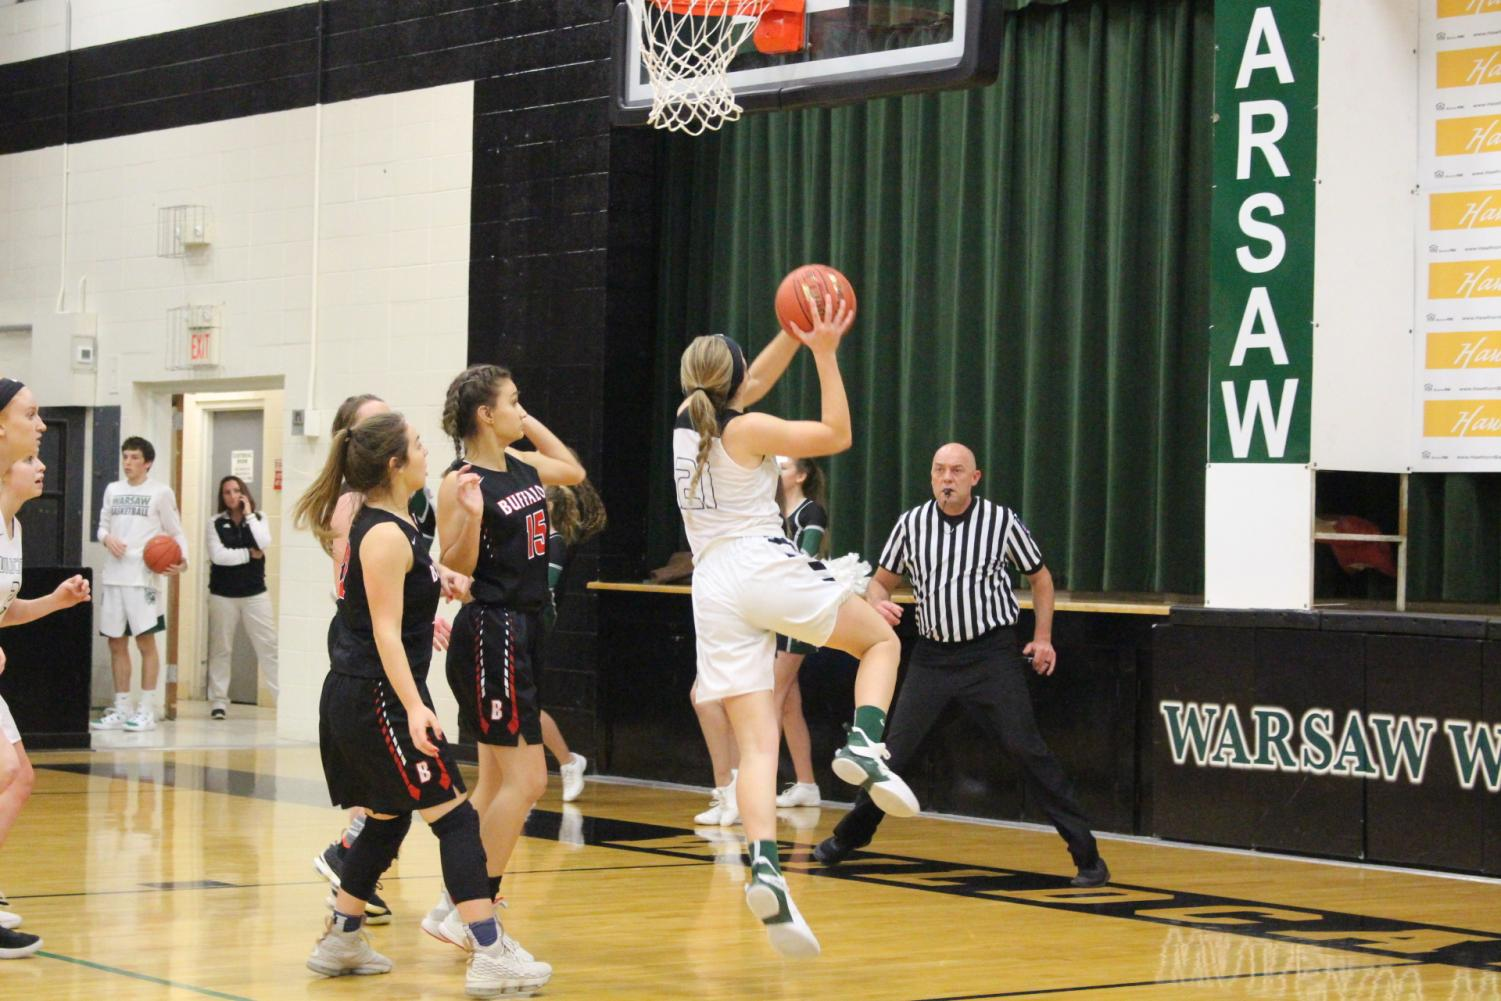 Junior Aubrie McRoberts goes up for a lay up against Buffalo during the Warsaw Tournament. The team's record is 6-11. Photo by Rylee Pals.